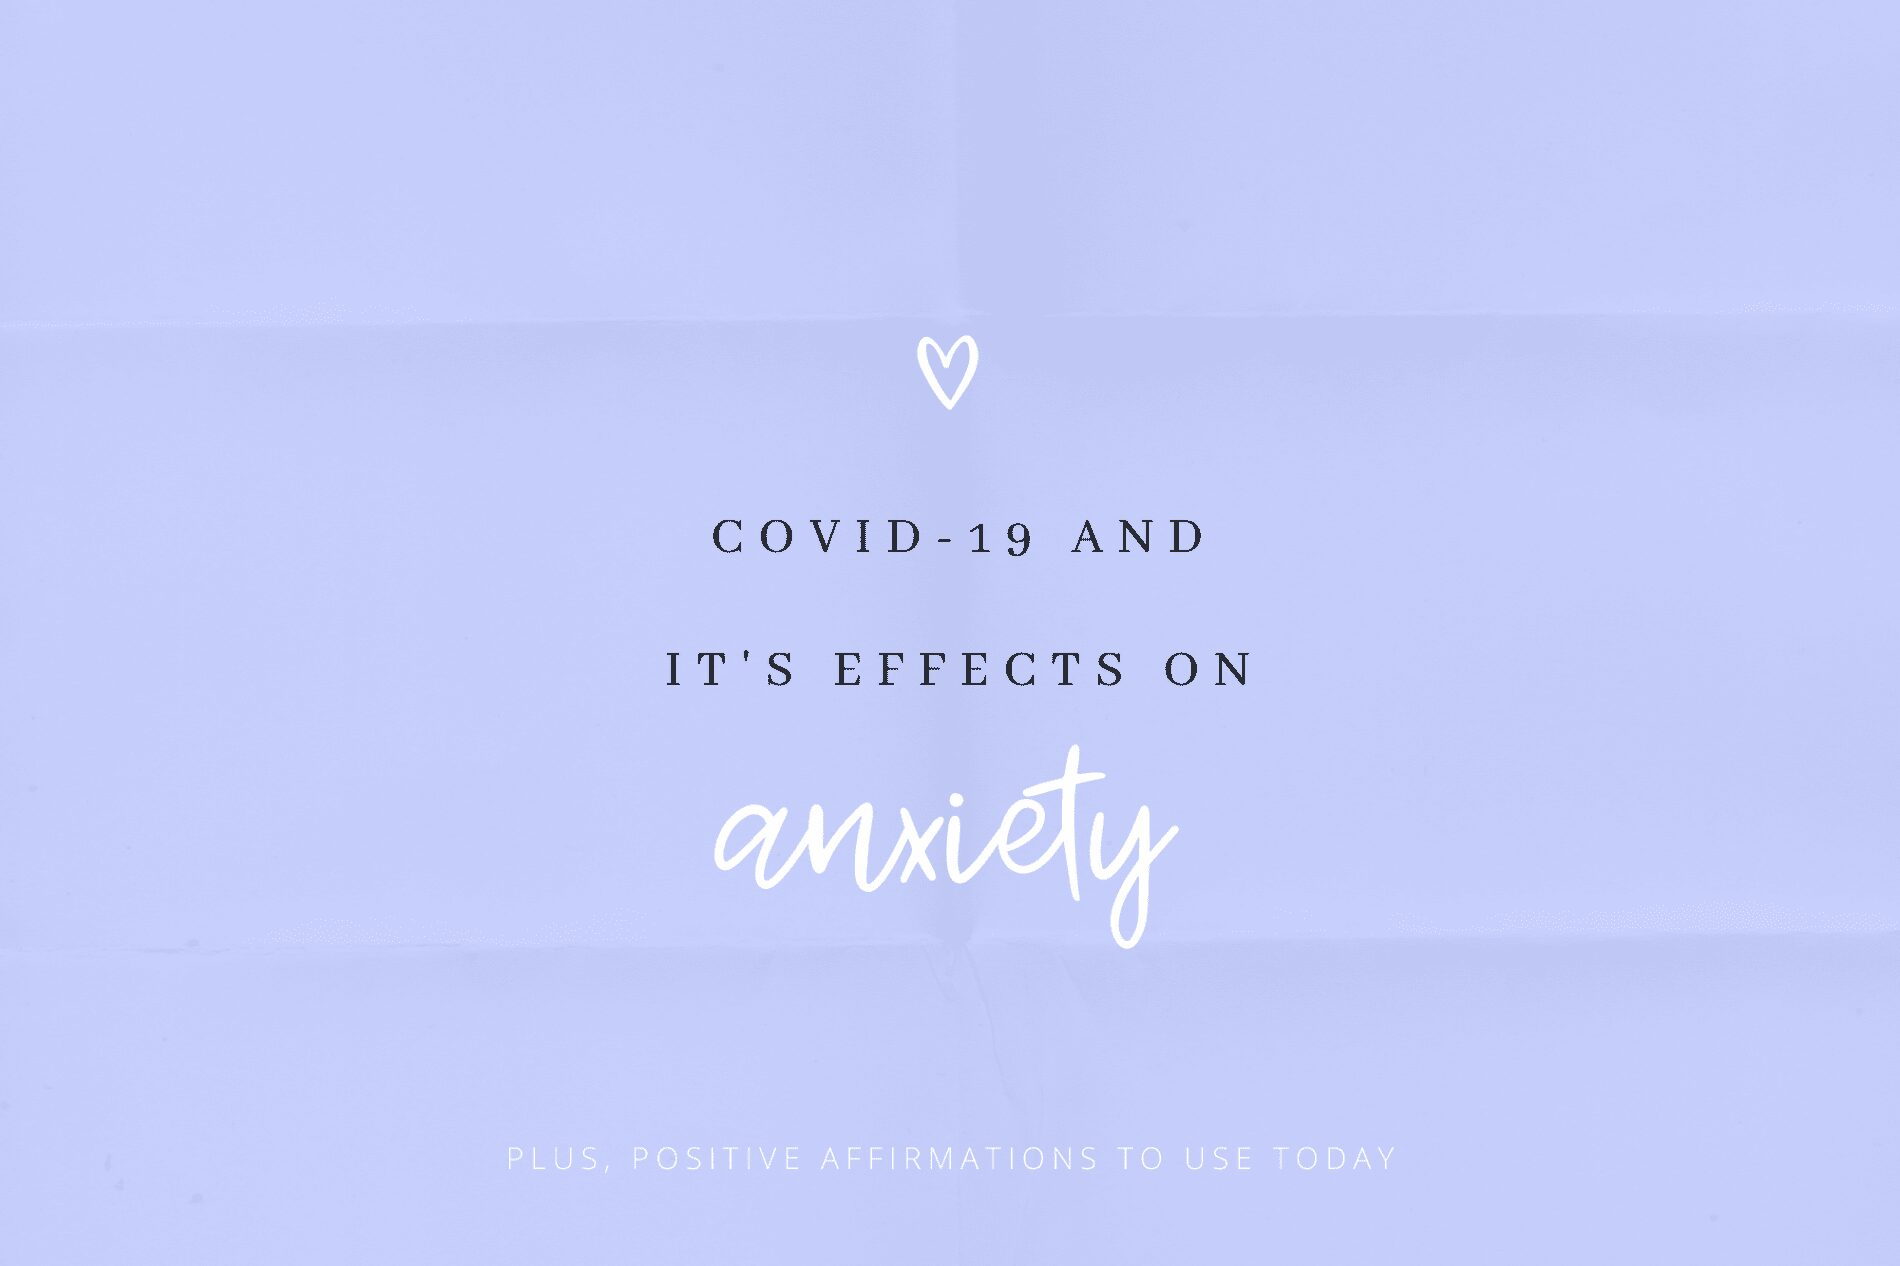 covid-19 and its effects on anxiety